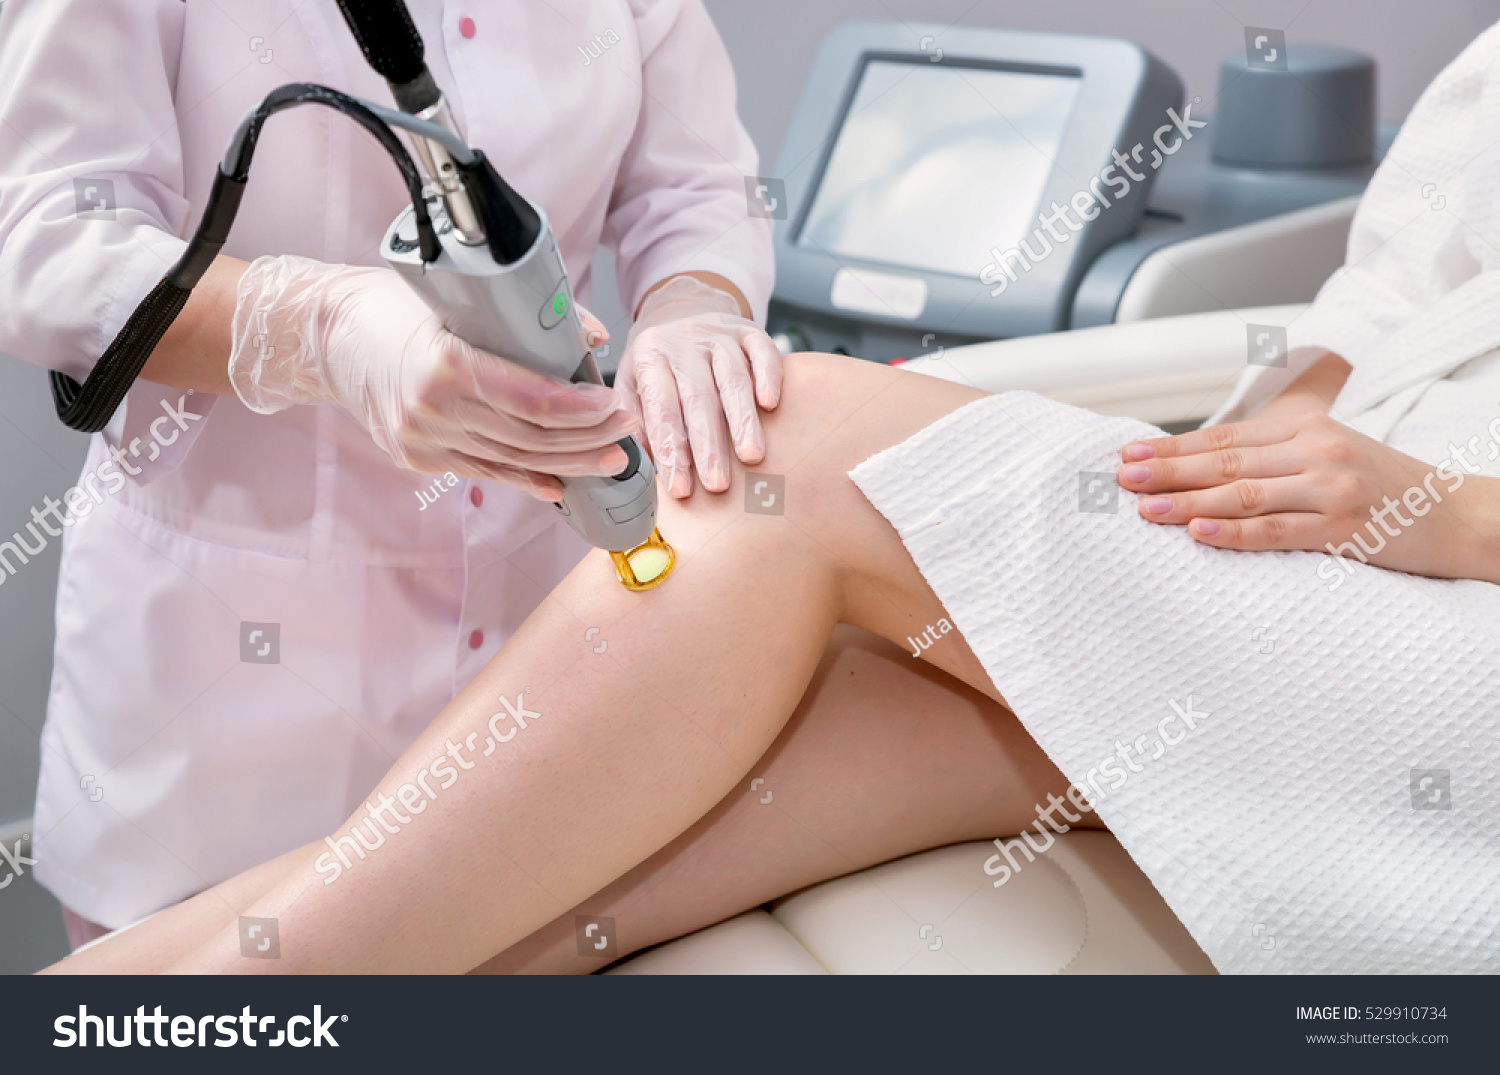 Laser technology in the service of a cosmetologist: beauty without harm to health